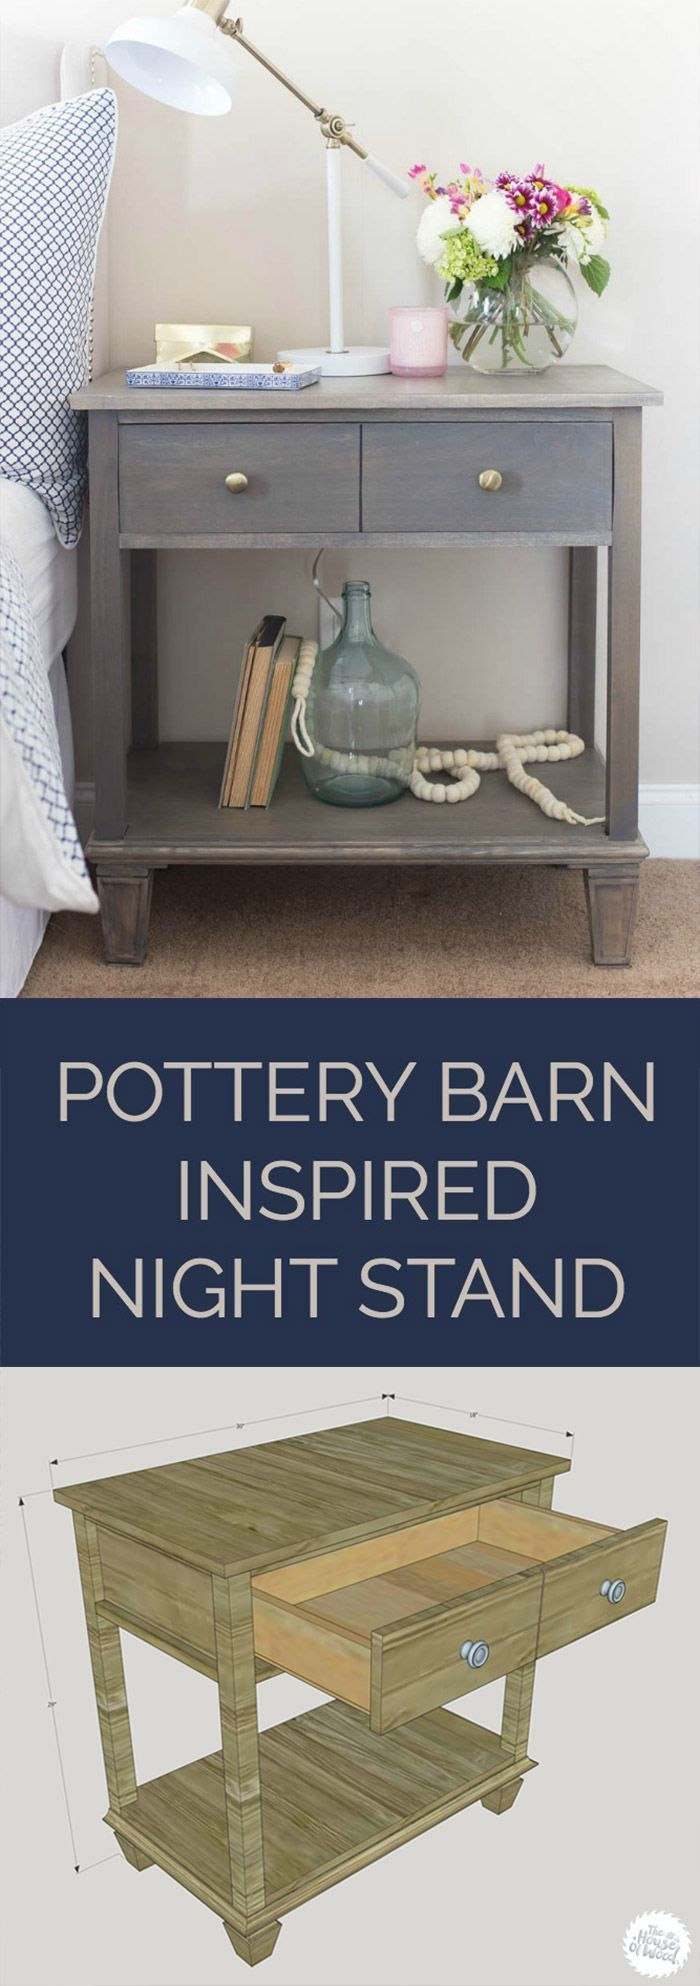 35 Best Smoker Images By Tim Windbigler On Pinterest Diy Simple Moonshine Still Diagram Pottery Barn Inspired Sausalito Bedside Table